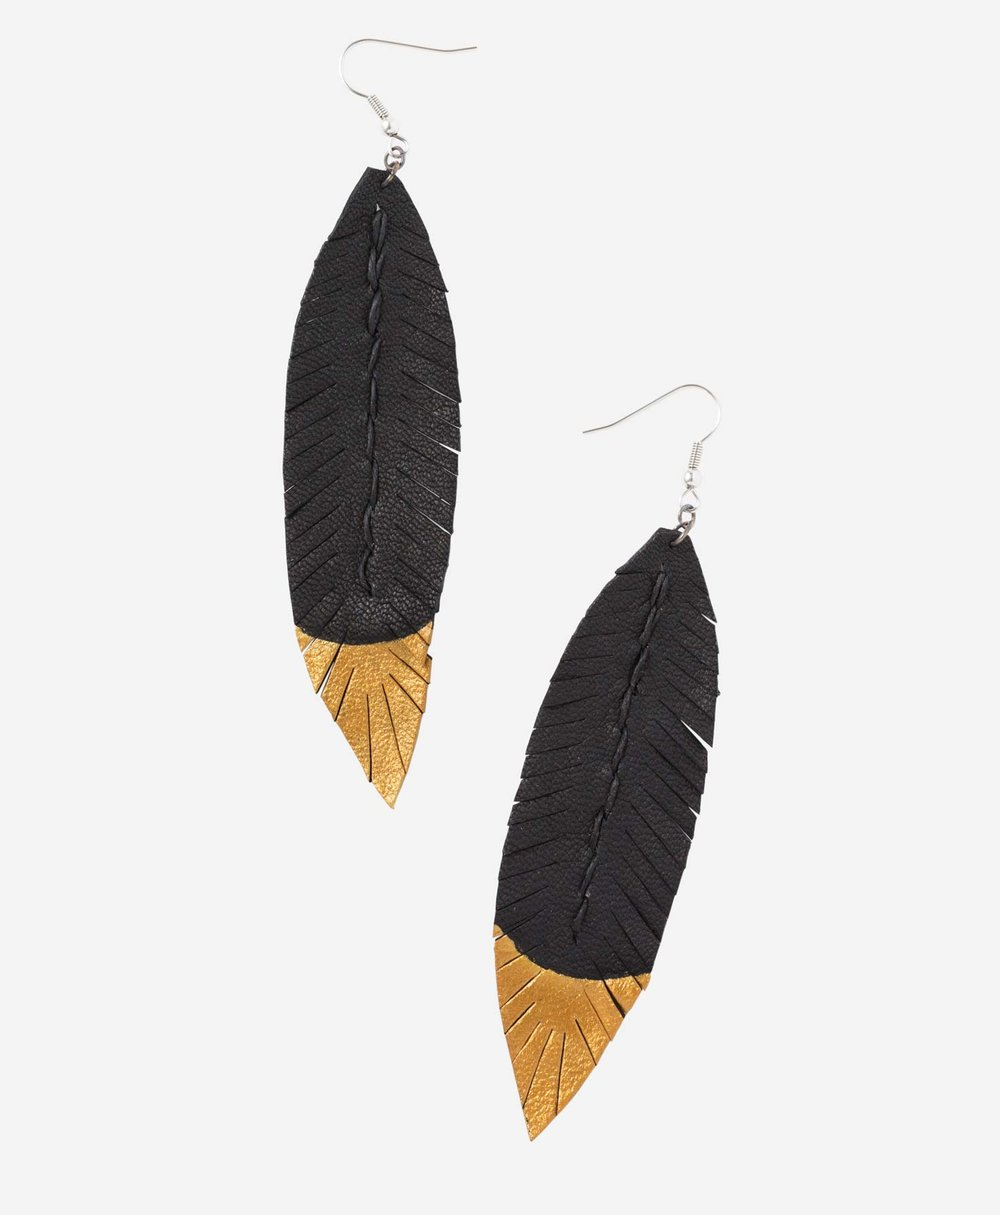 Birds of a Feather Earrings. Noonday. $32.